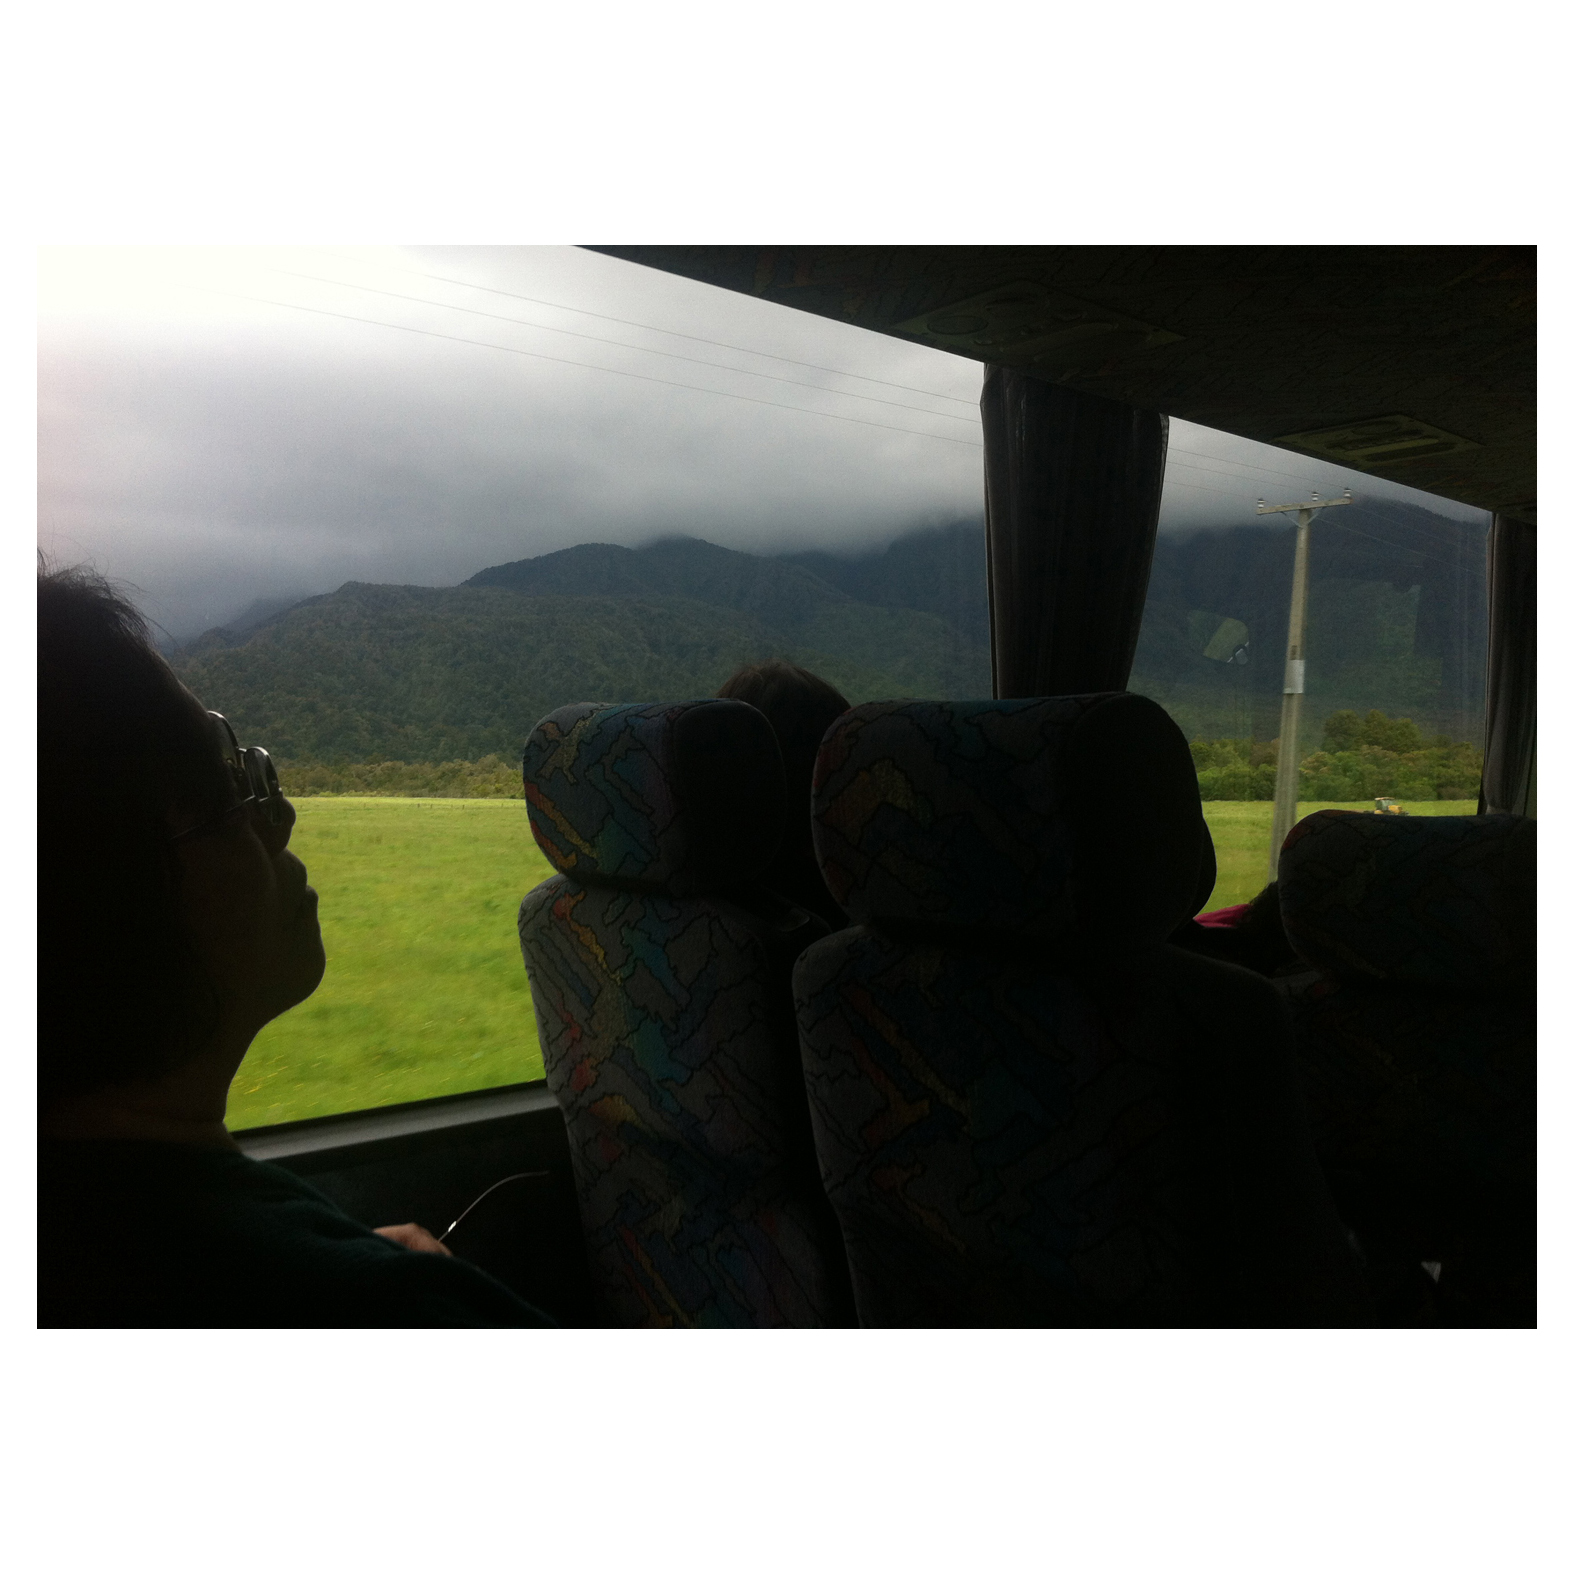 """I wore fisherman's pants all around South East Asia, but you wouldn't catch me wearing them here!"" . Unknown Irish backpacker, Intercity Bus - Franz Josef to Wanaka."